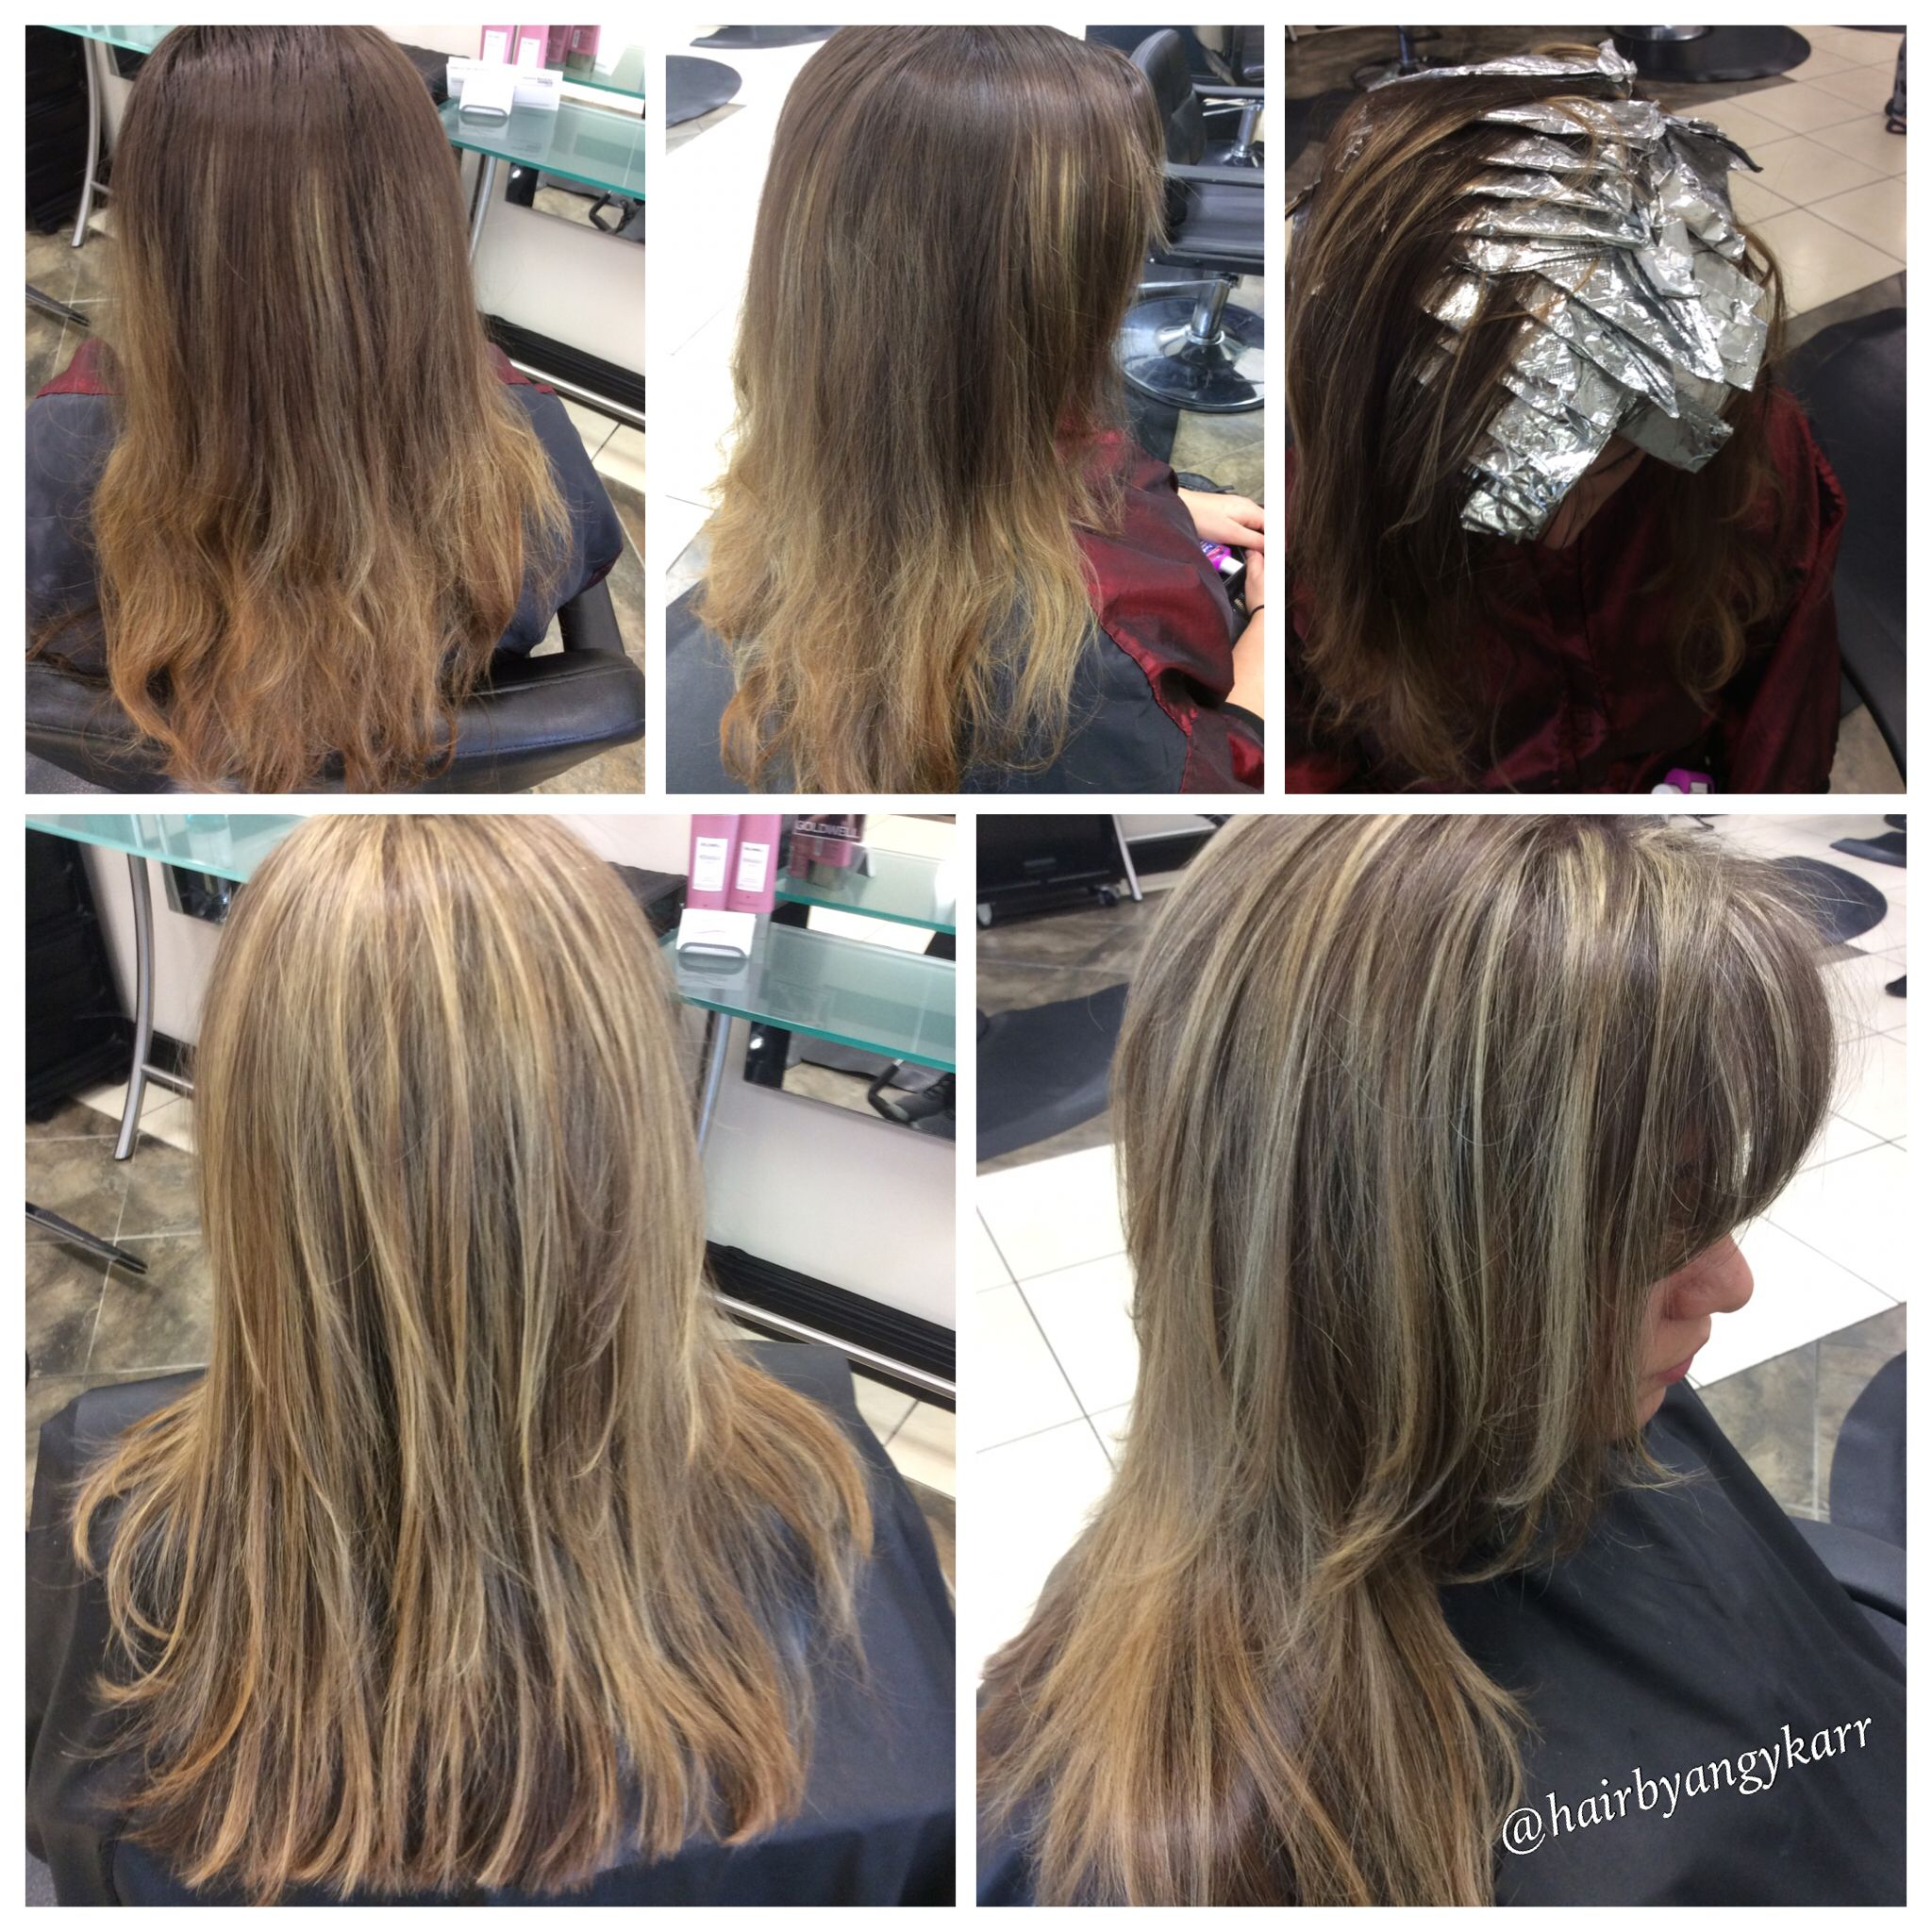 Pin By Haircolorconcepts On Hair By Angelica Carillo Pinterest